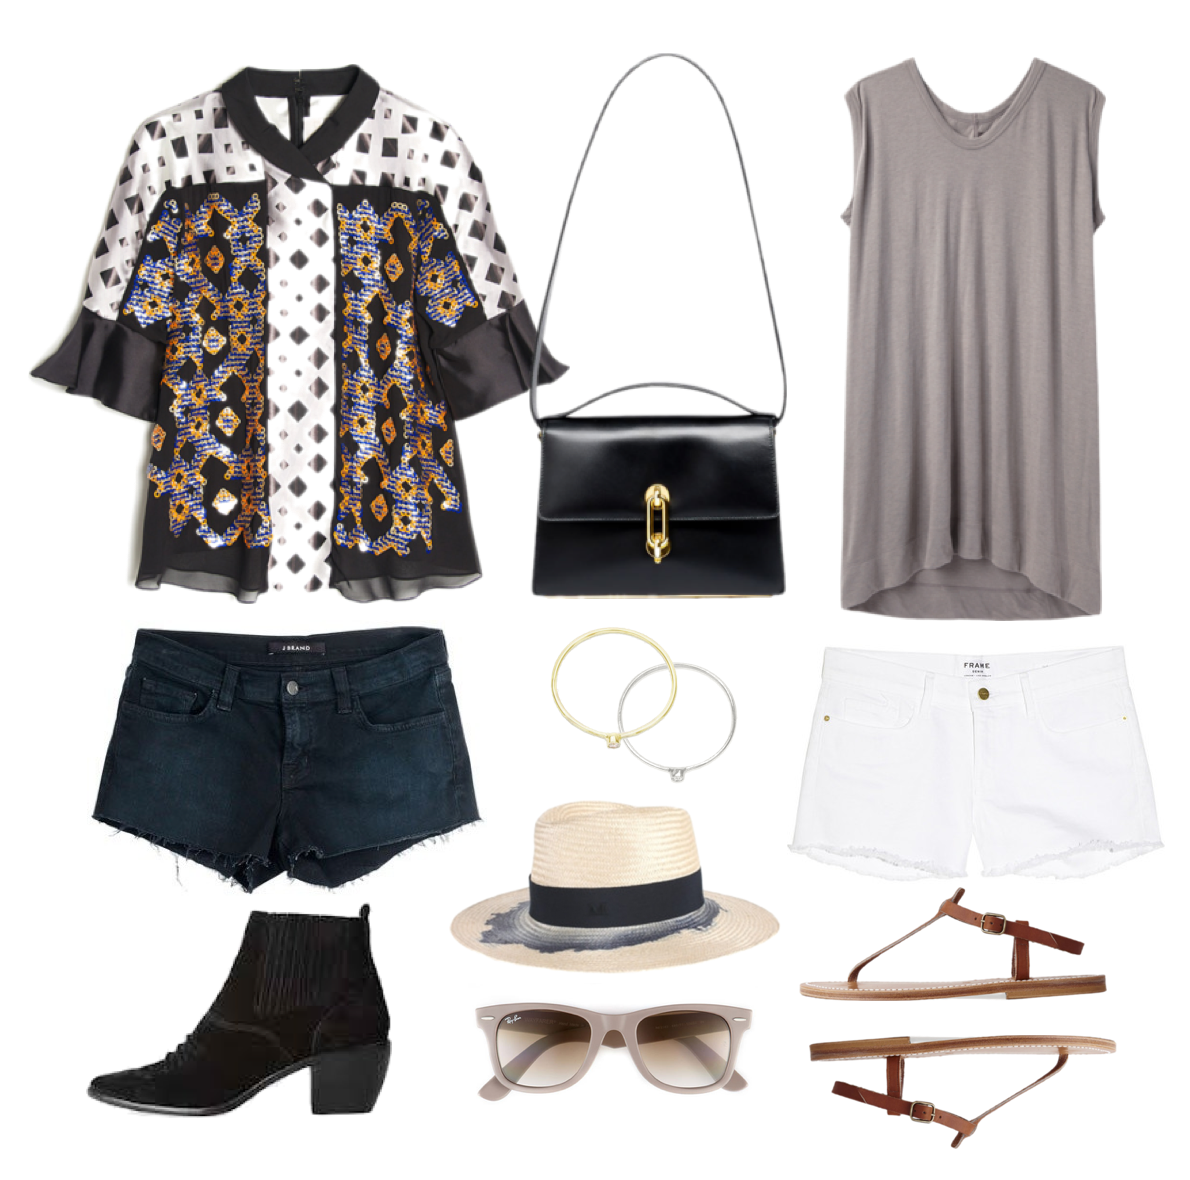 Coachella looks:outfits - Balenciaga, J.Brands shorts, K. Jacques St Tropez Sandals, Rick Owens, Ray Ban, Maison Michel hat, Anine Bing rings